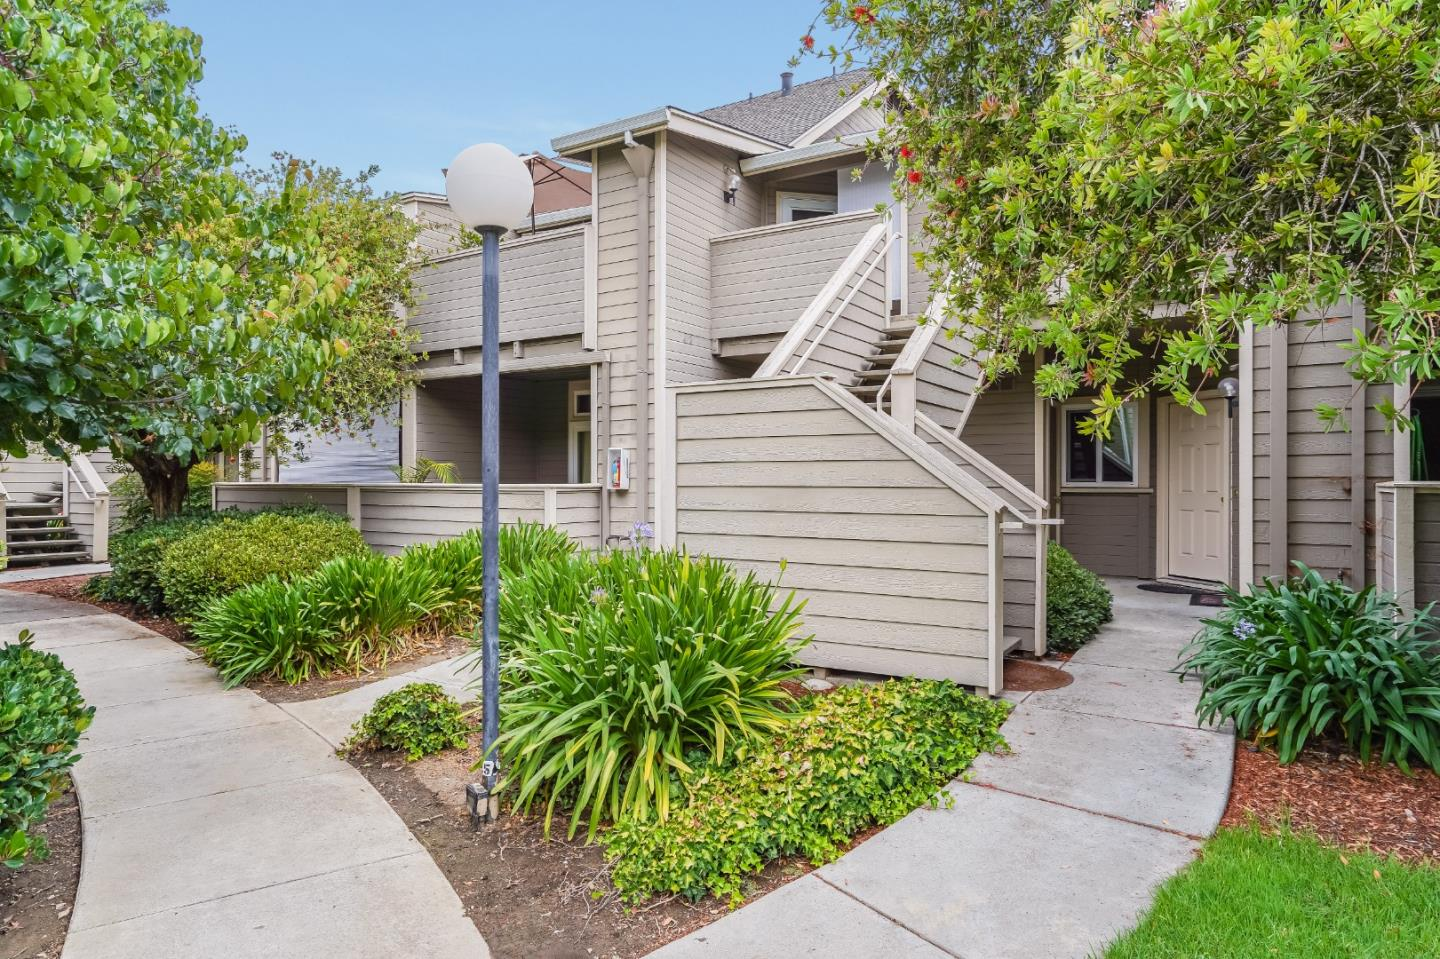 You found it!  This centrally located 2 bedroom 2 bathroom ground level condo is minutes away from Willow Glen, Caltrain Station, Downtown SJ and more.  Secured and gated community with well manicured grounds and outdoor swimming pool.  Nicely updated interior features a kitchen with stainless steel appliances, granite countertops and backsplash.  Updated vanities and tile in both bathrooms.  Newer laminate flooring and brand new carpets in both bedrooms.  Recessed lights shine bright from high cellings, creating a feeling of space and airiness.  Dual paned windows throughout, provide great insulation for the interior.  Sliding door leads to private patio to enjoy the beautiful California weather.